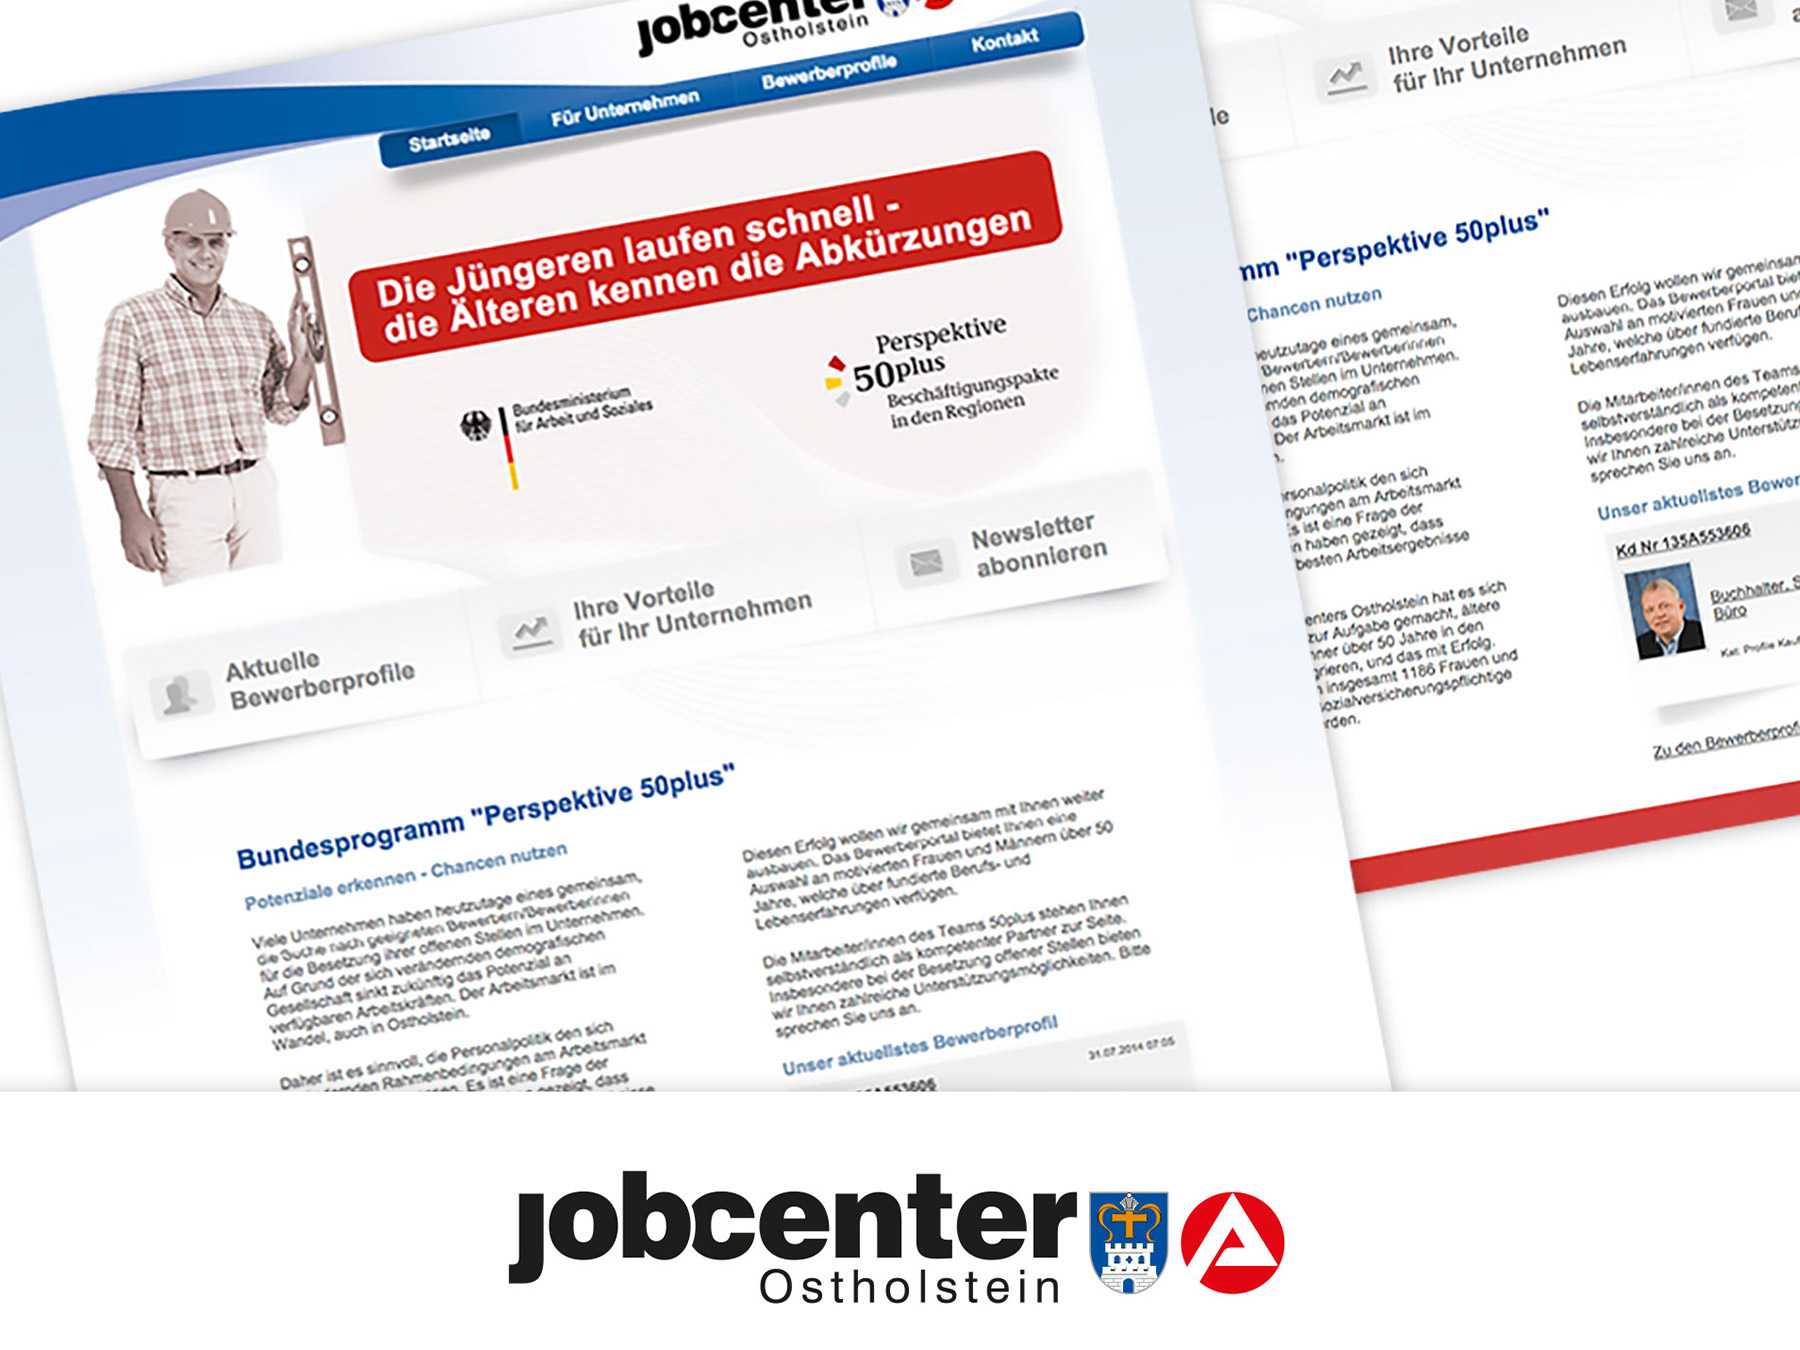 AuD Referenzen Jobcenter Webdesign Ostholstein